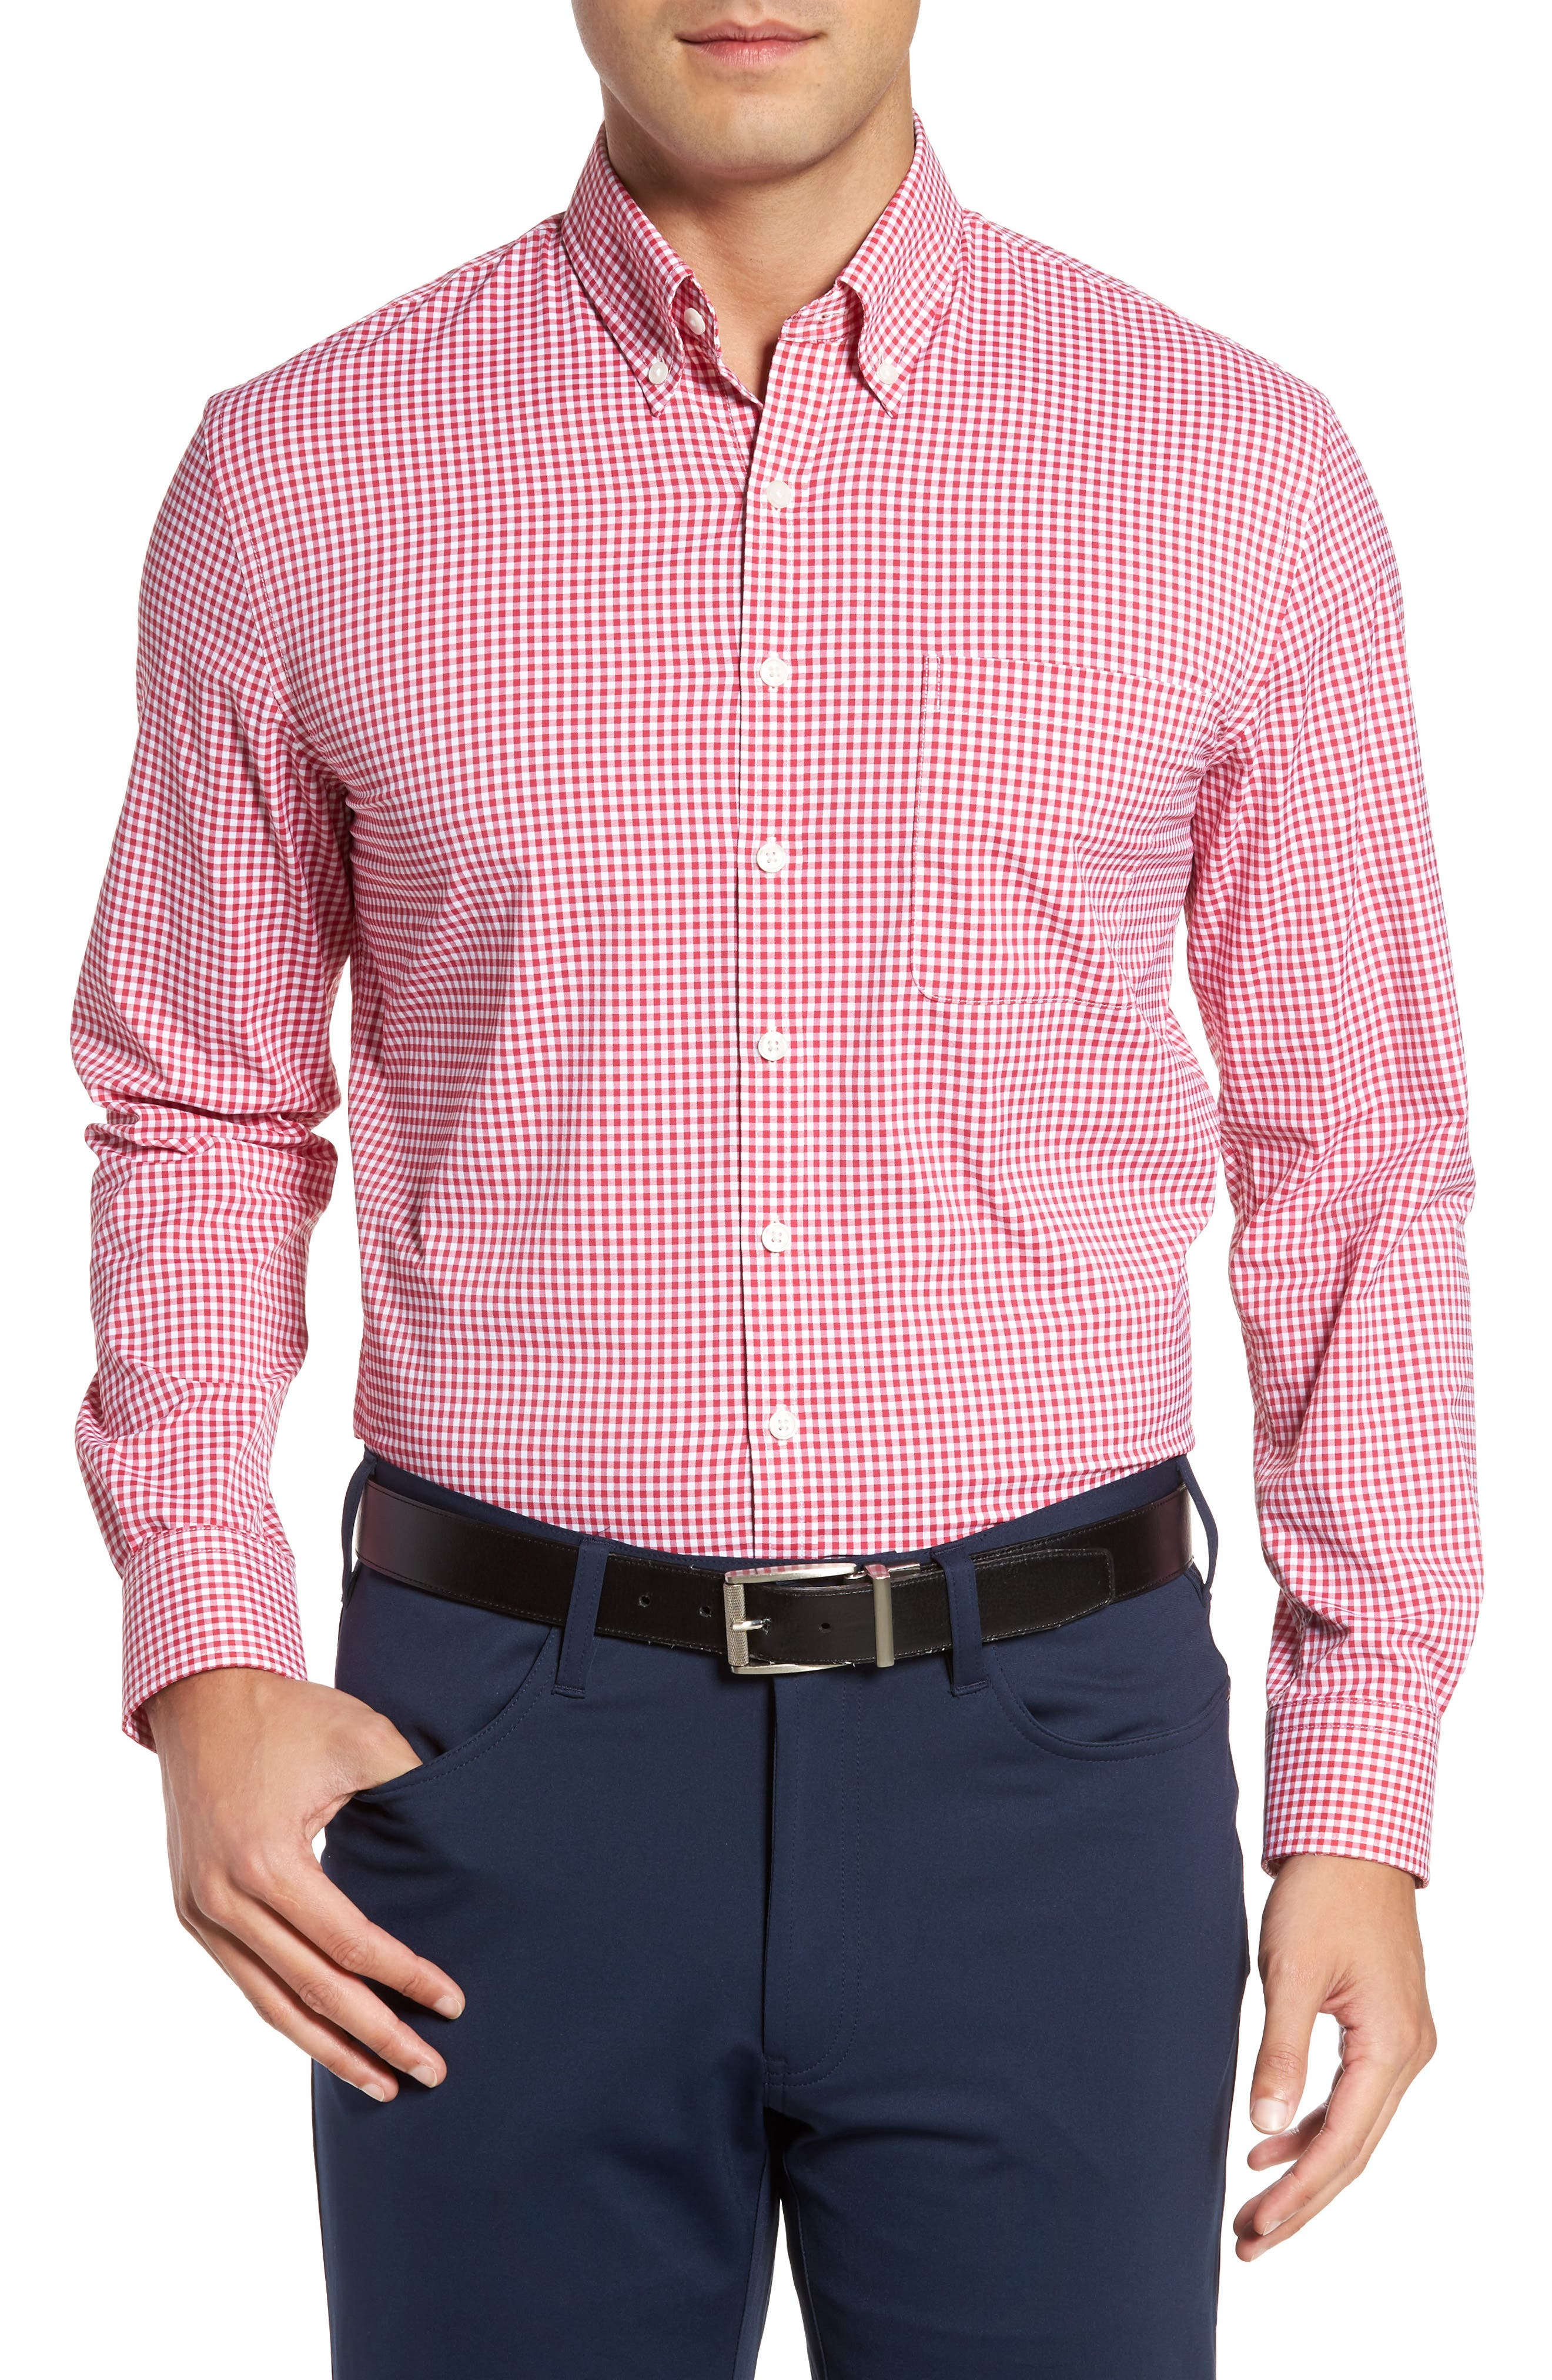 Ramsey Easy Care Gingham Sport Shirt,                         Main,                         color, Pompei Pink